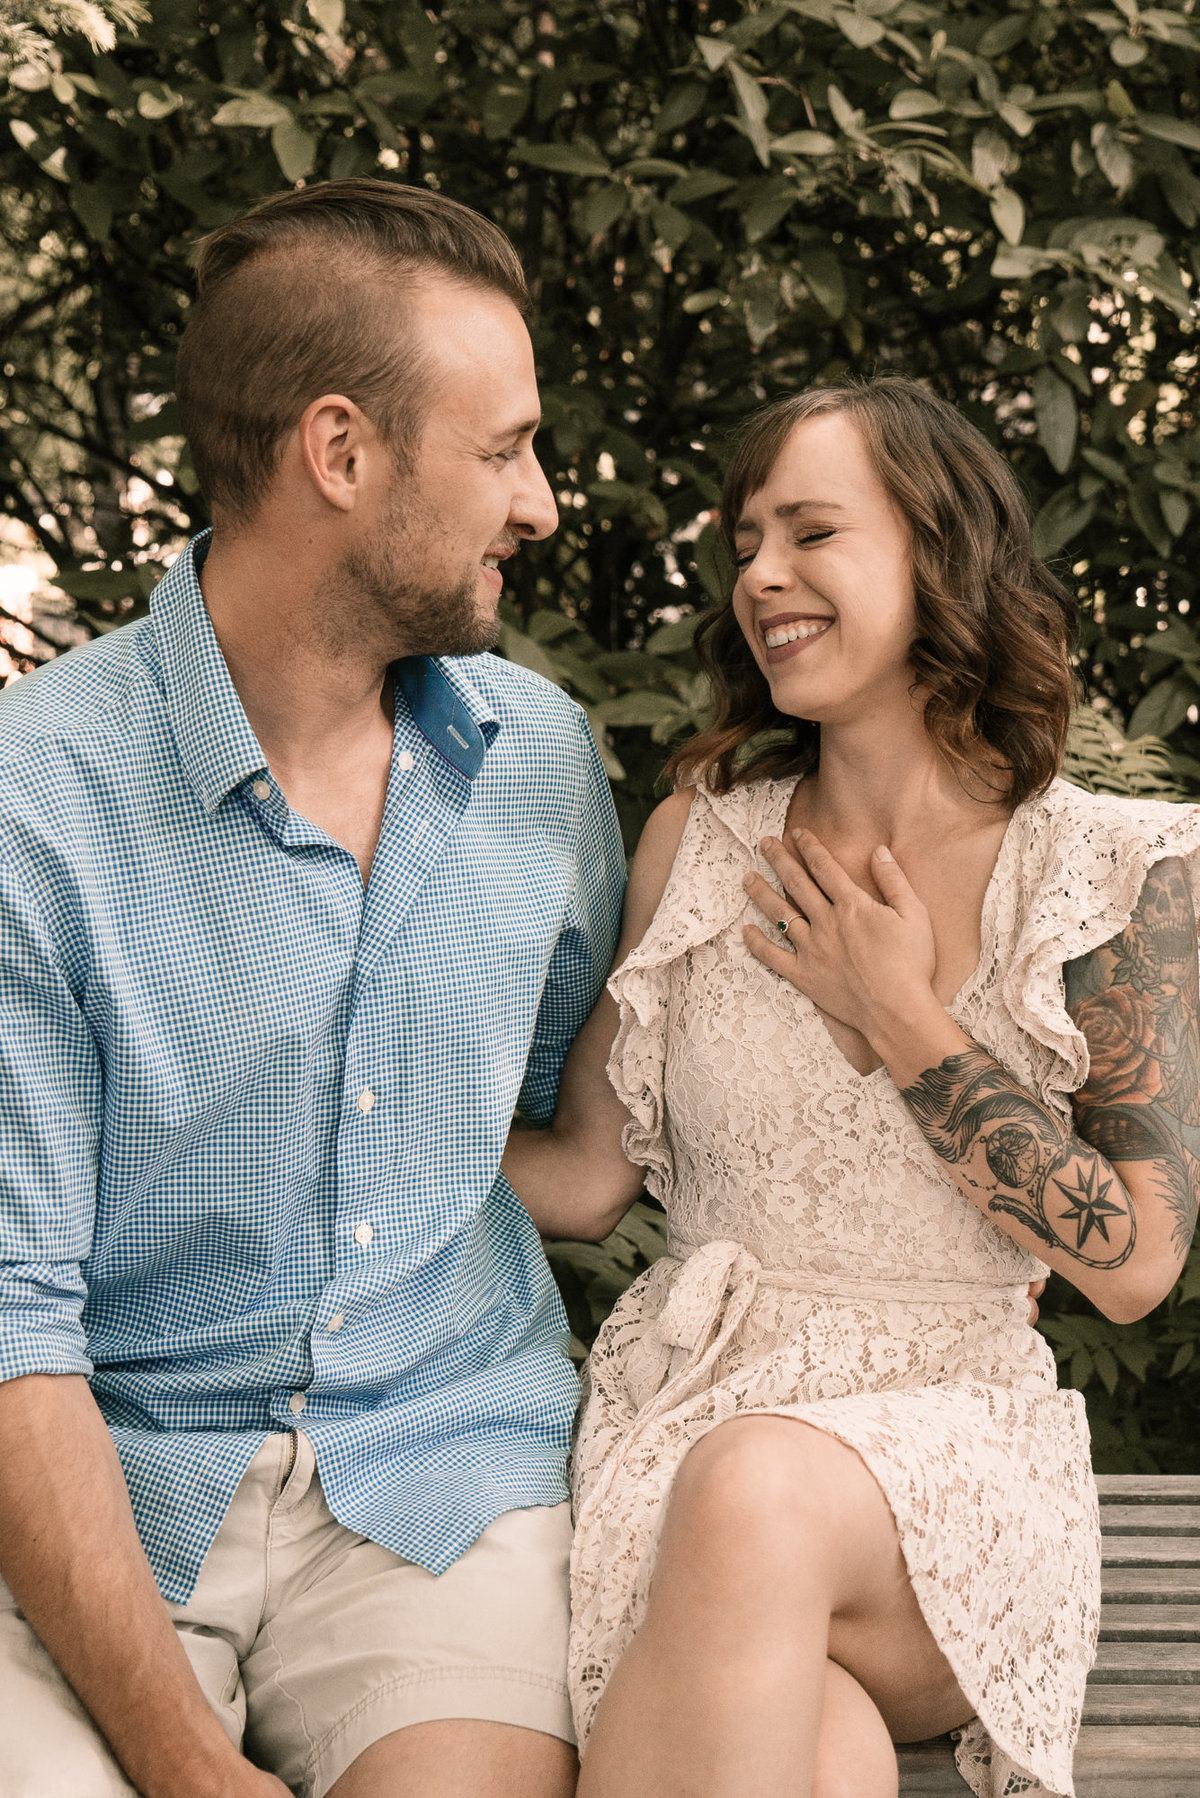 denver-botanic-gardens-engagement-session-wedding-photographer-colorado-09763